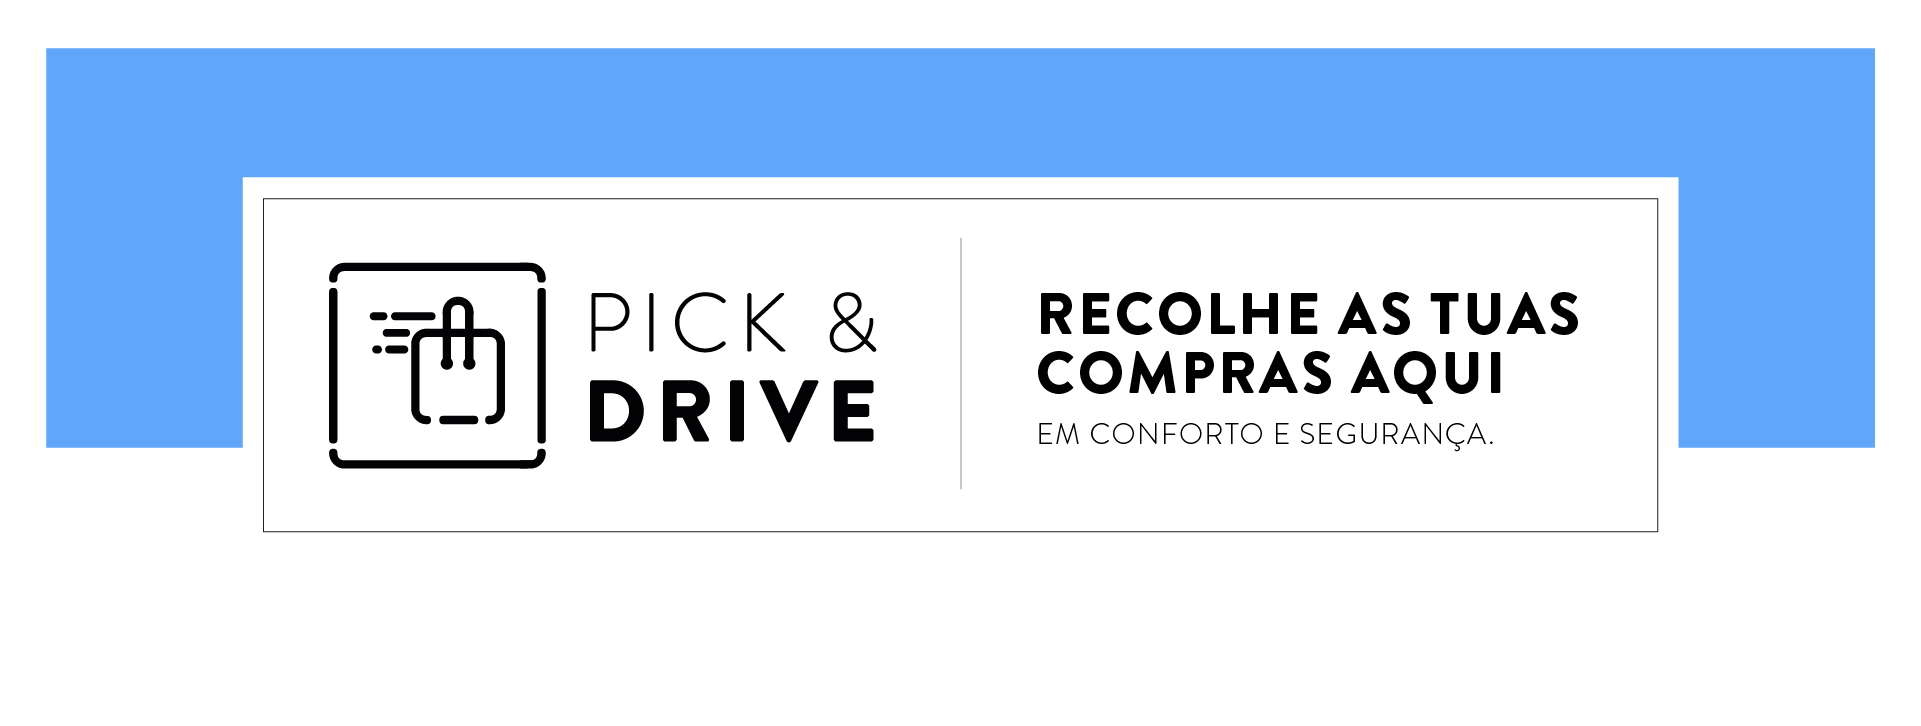 Nosso Shopping | Pick & Drive